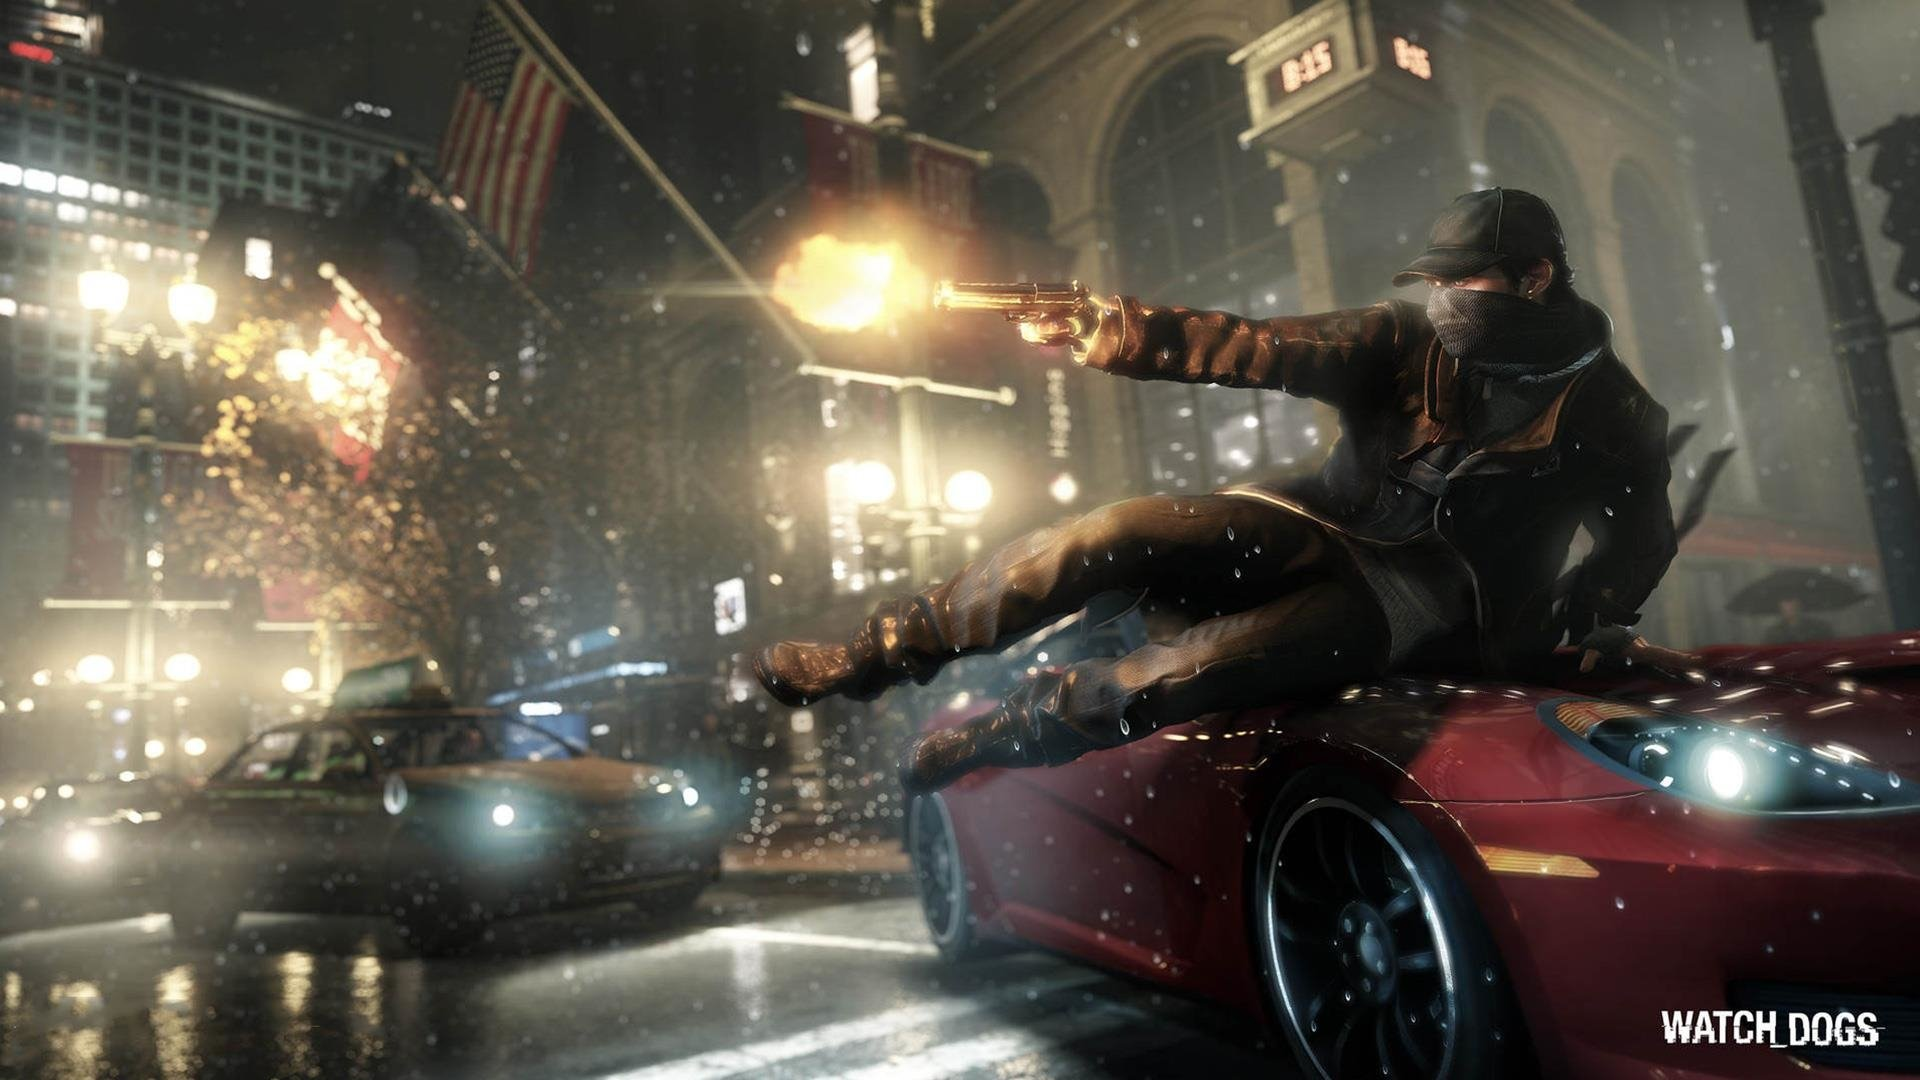 126 watch dogs hd wallpapers background images wallpaper abyss hd wallpaper background image id270065 voltagebd Images